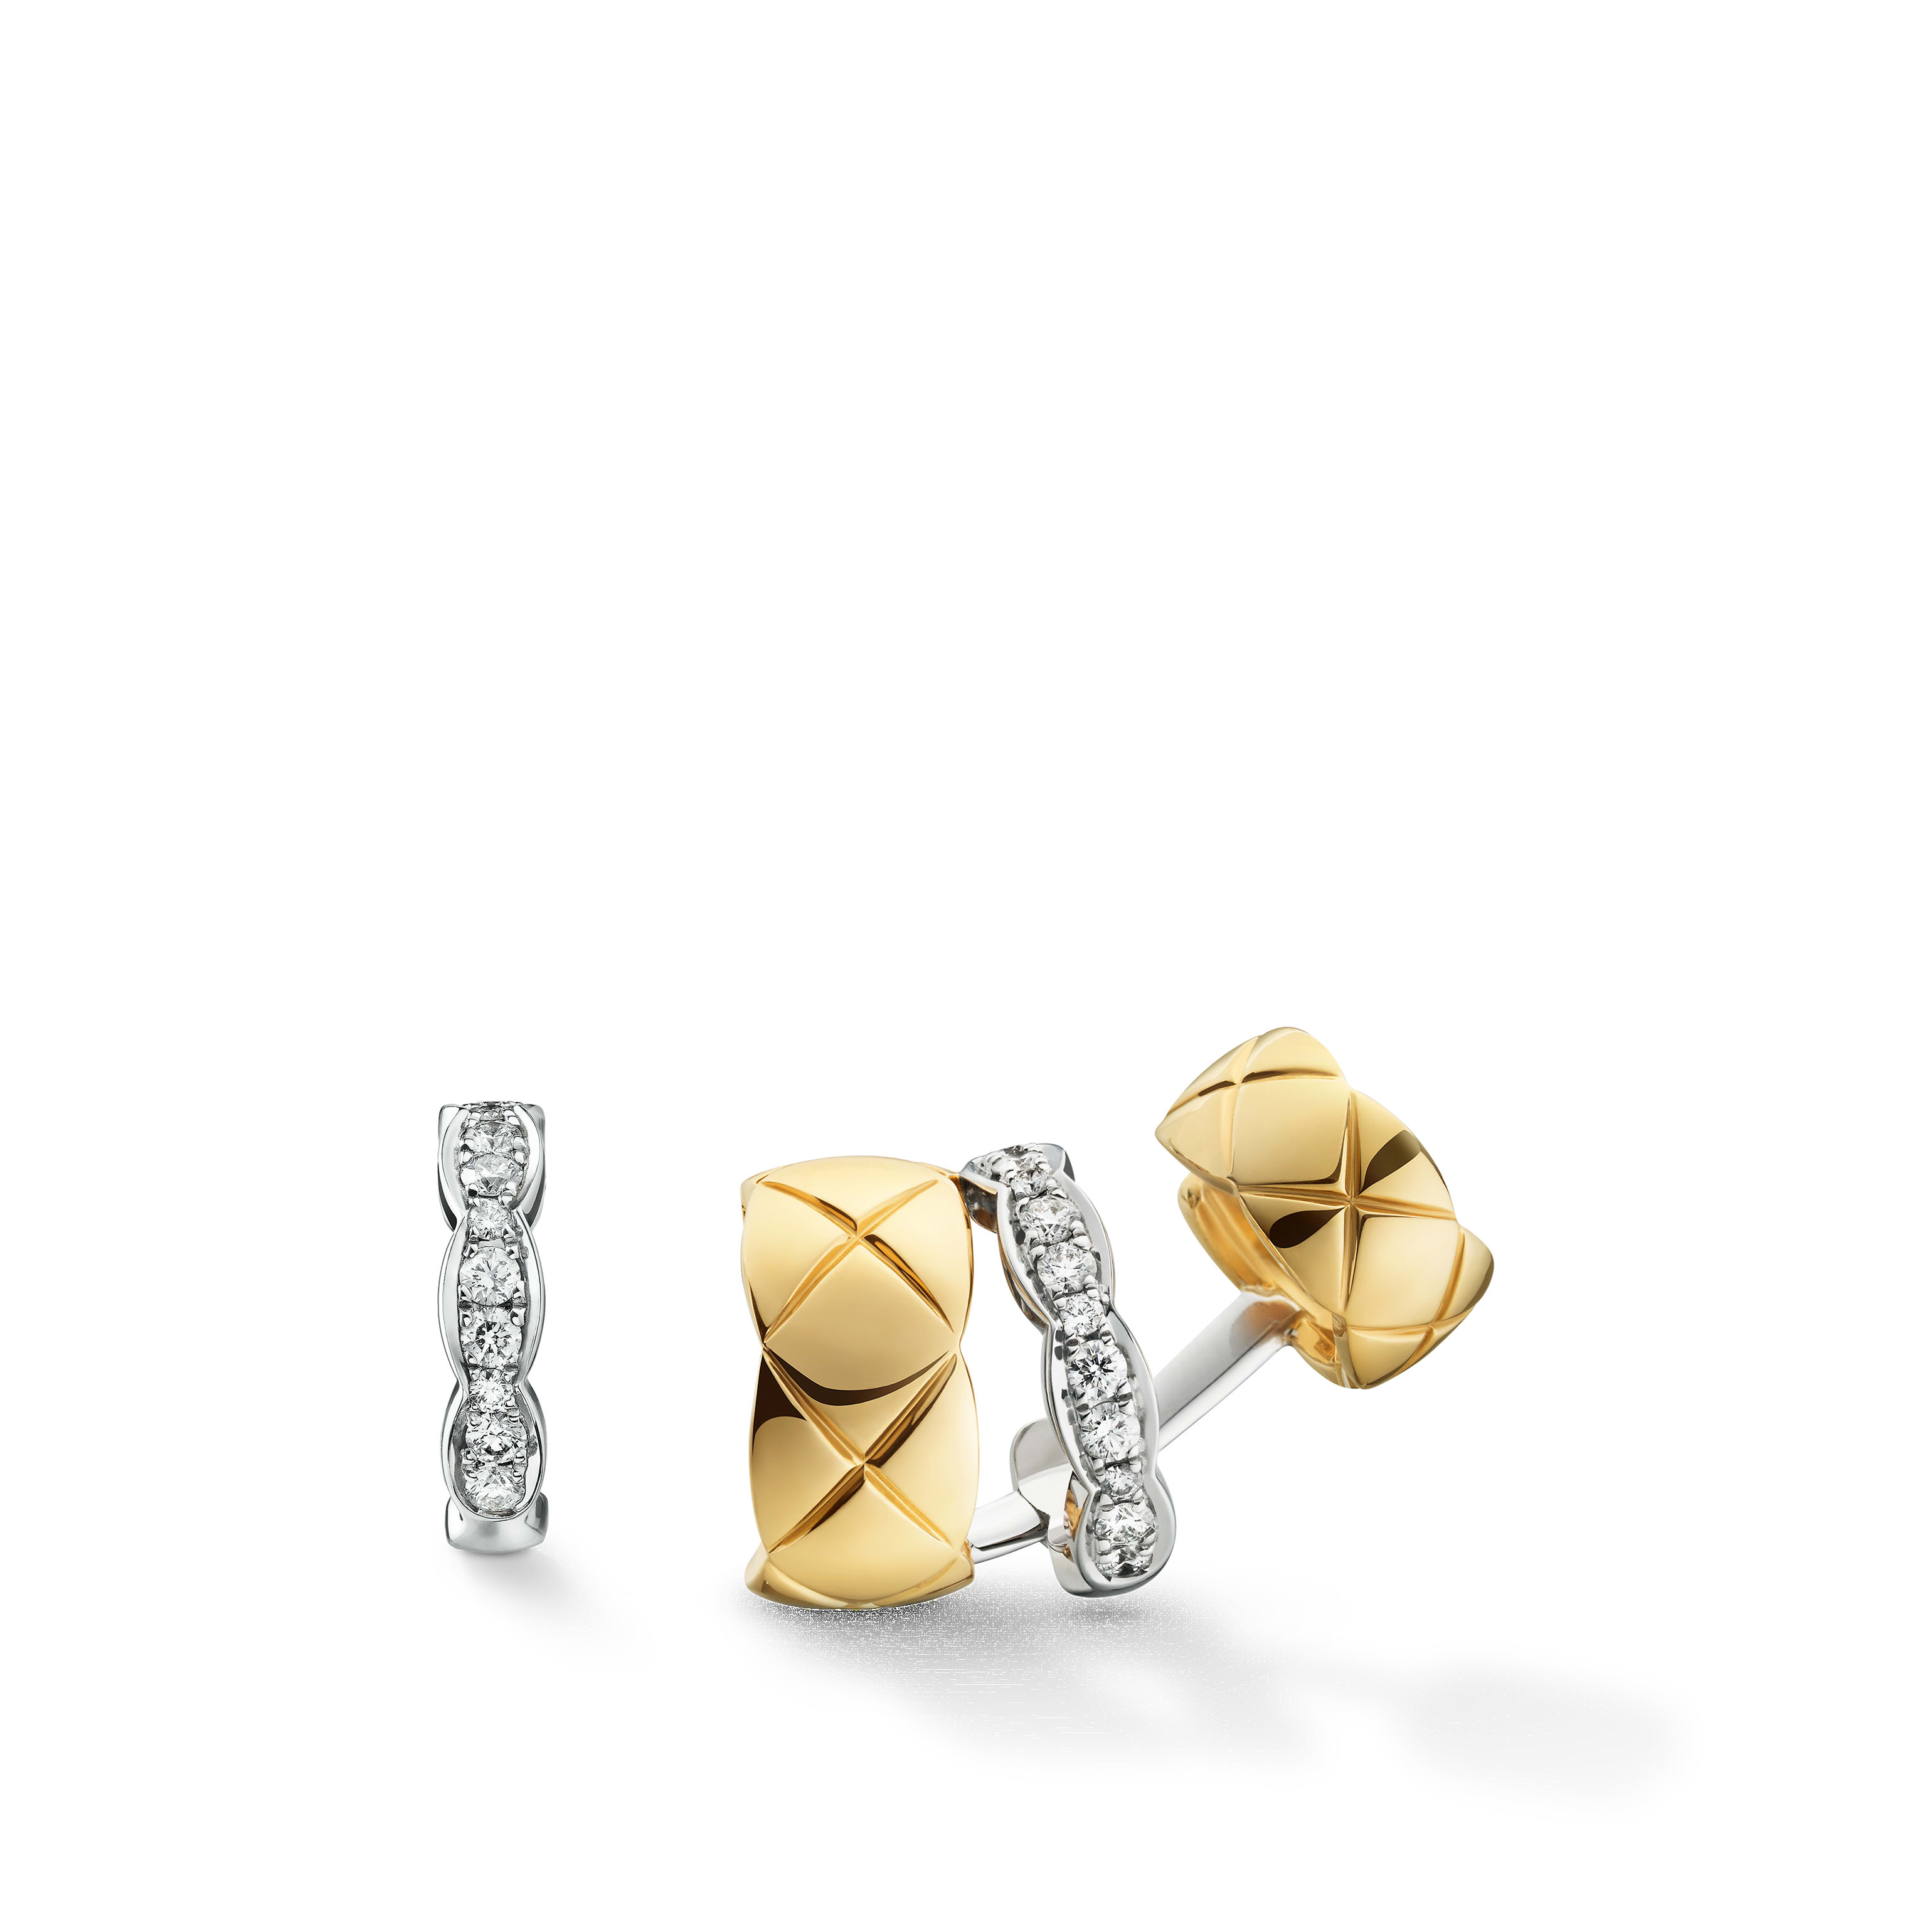 Coco Crush earrings - Quilted motif, 18K white and yellow gold, diamonds - CHANEL - Default view - see standard sized version